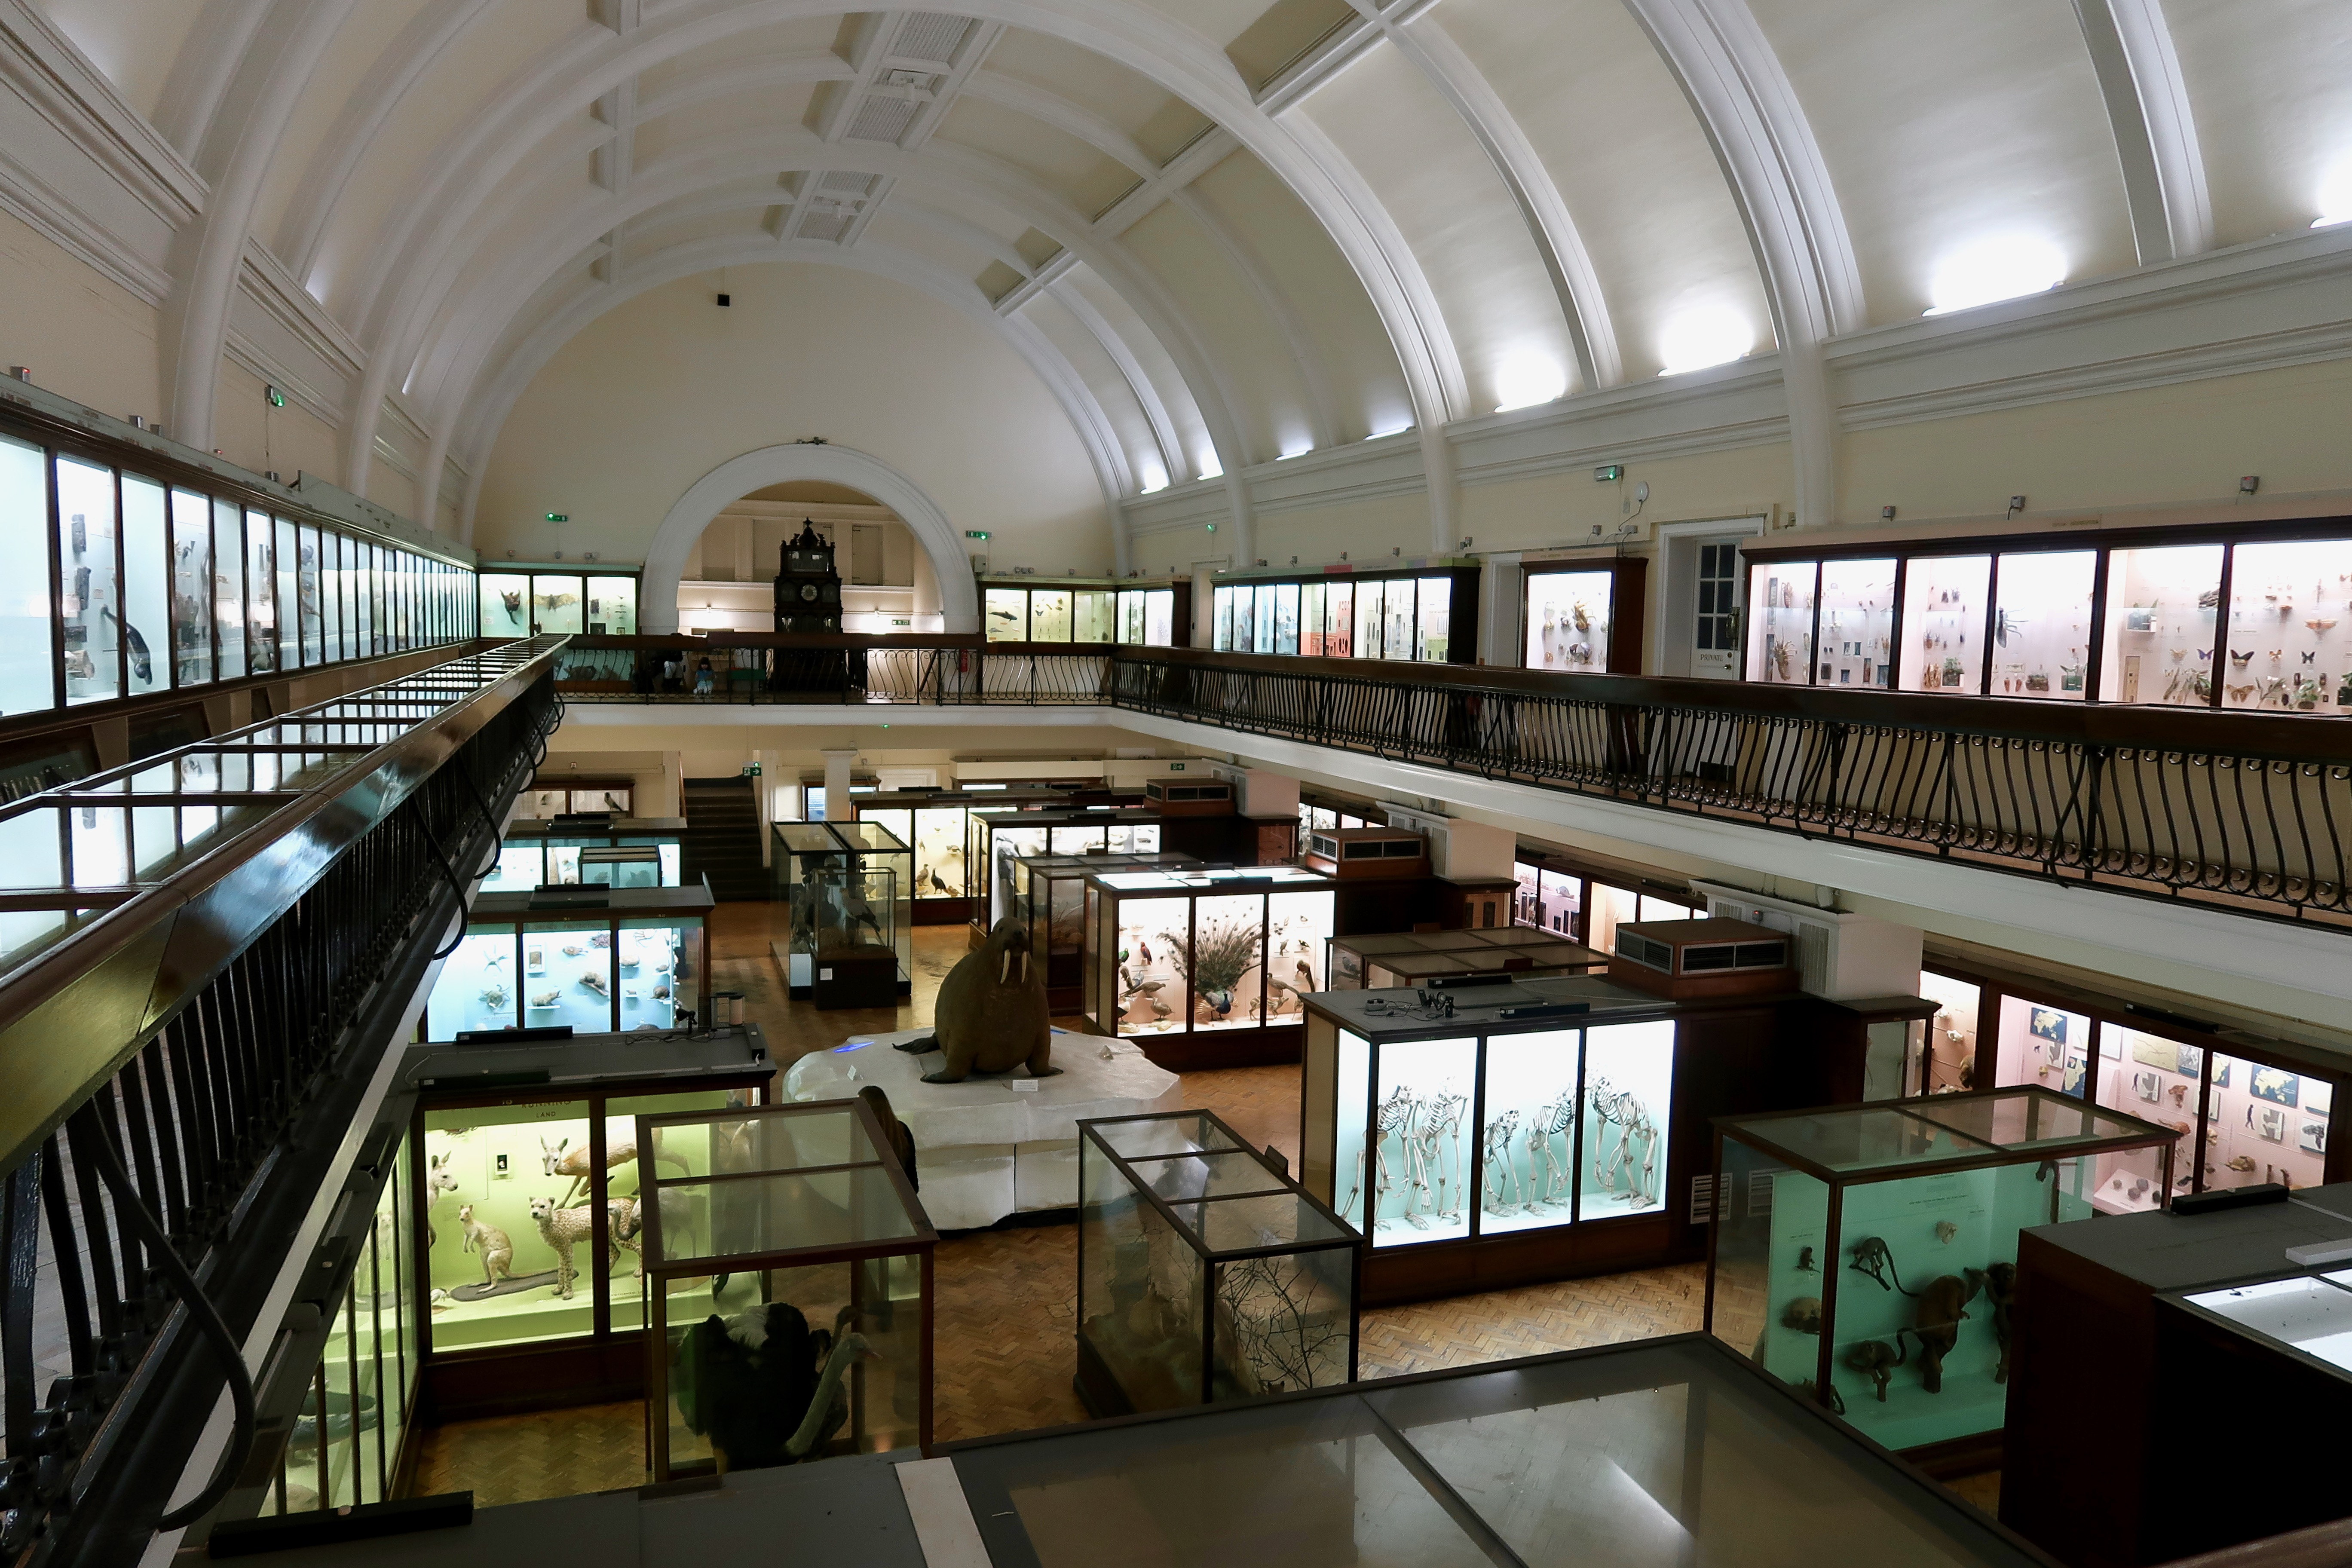 The Horniman Museum Natural History Gallery